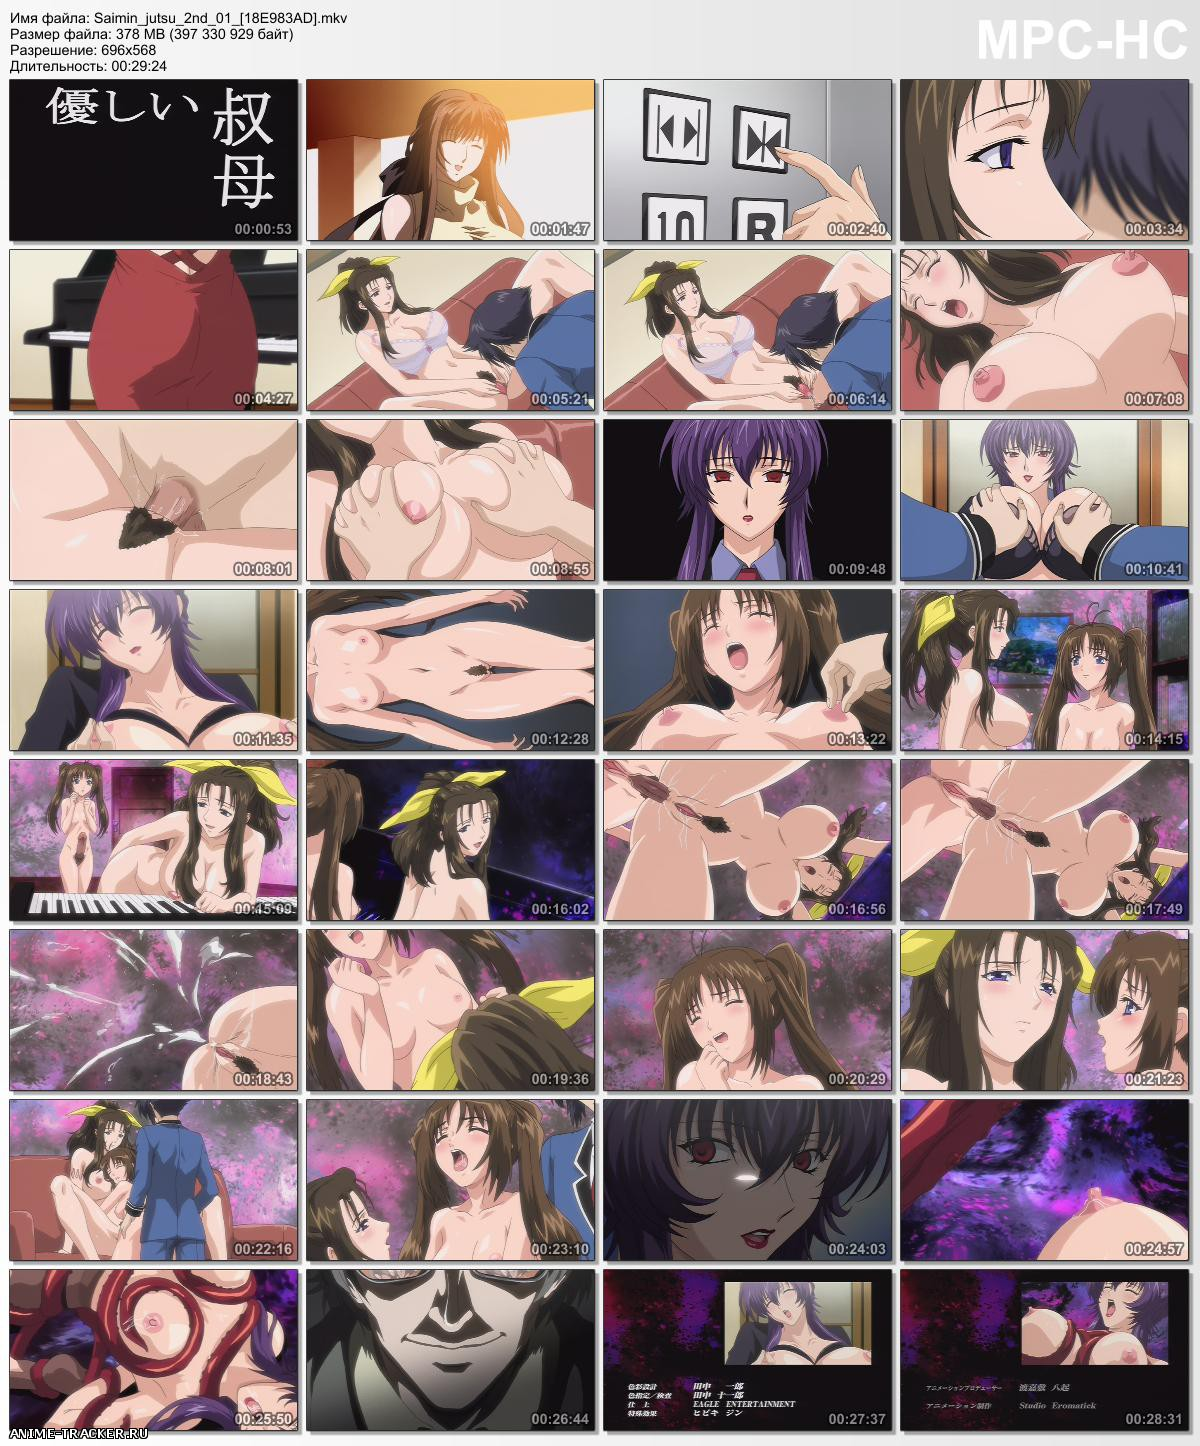 Гипноз 2 / Saimin Jutsu The Animation 2nd / Hypnosis 2 [Ep.1-2] [JPN,ENG,RUS,GER] Anime Hentai